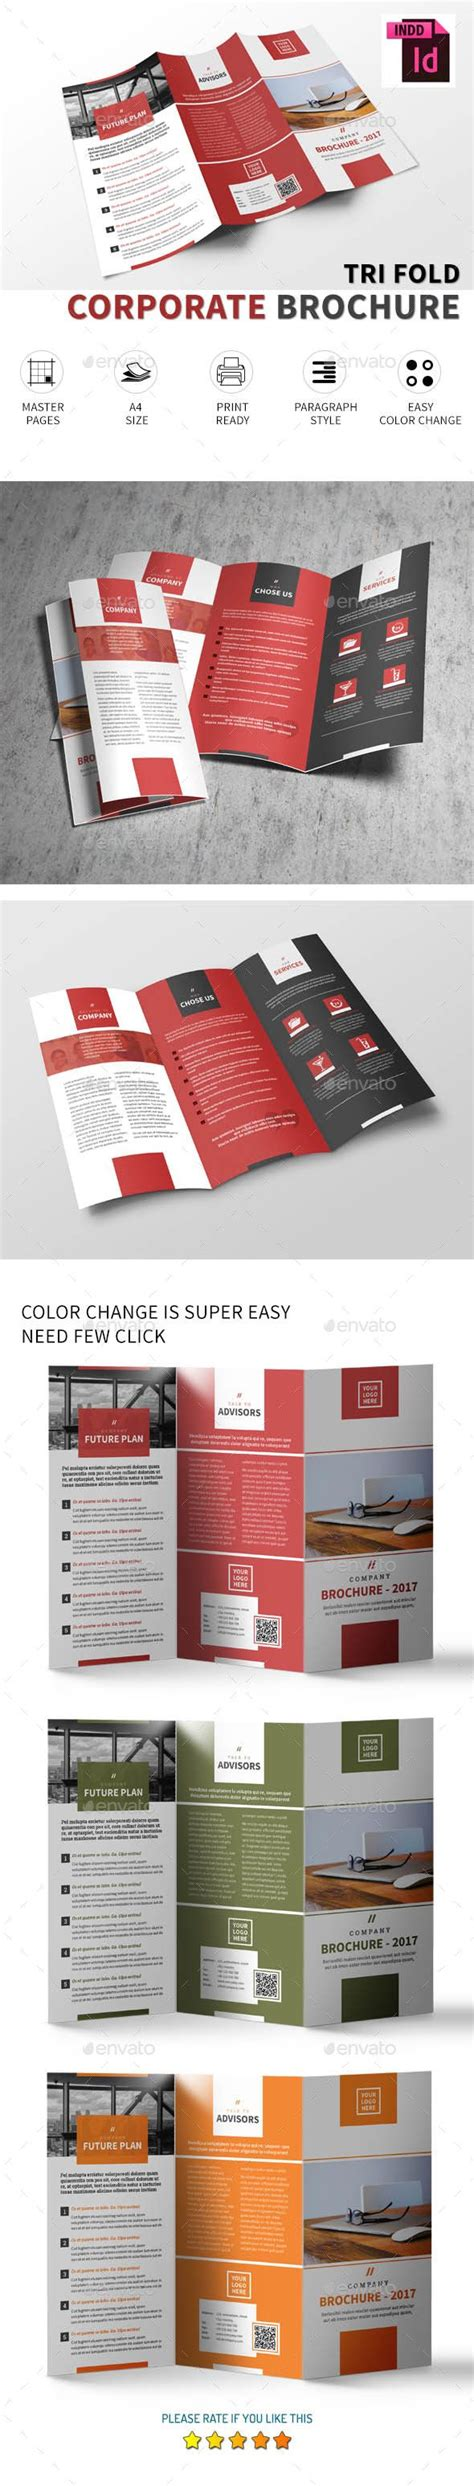 1000 ideas about tri fold brochure on pinterest tri